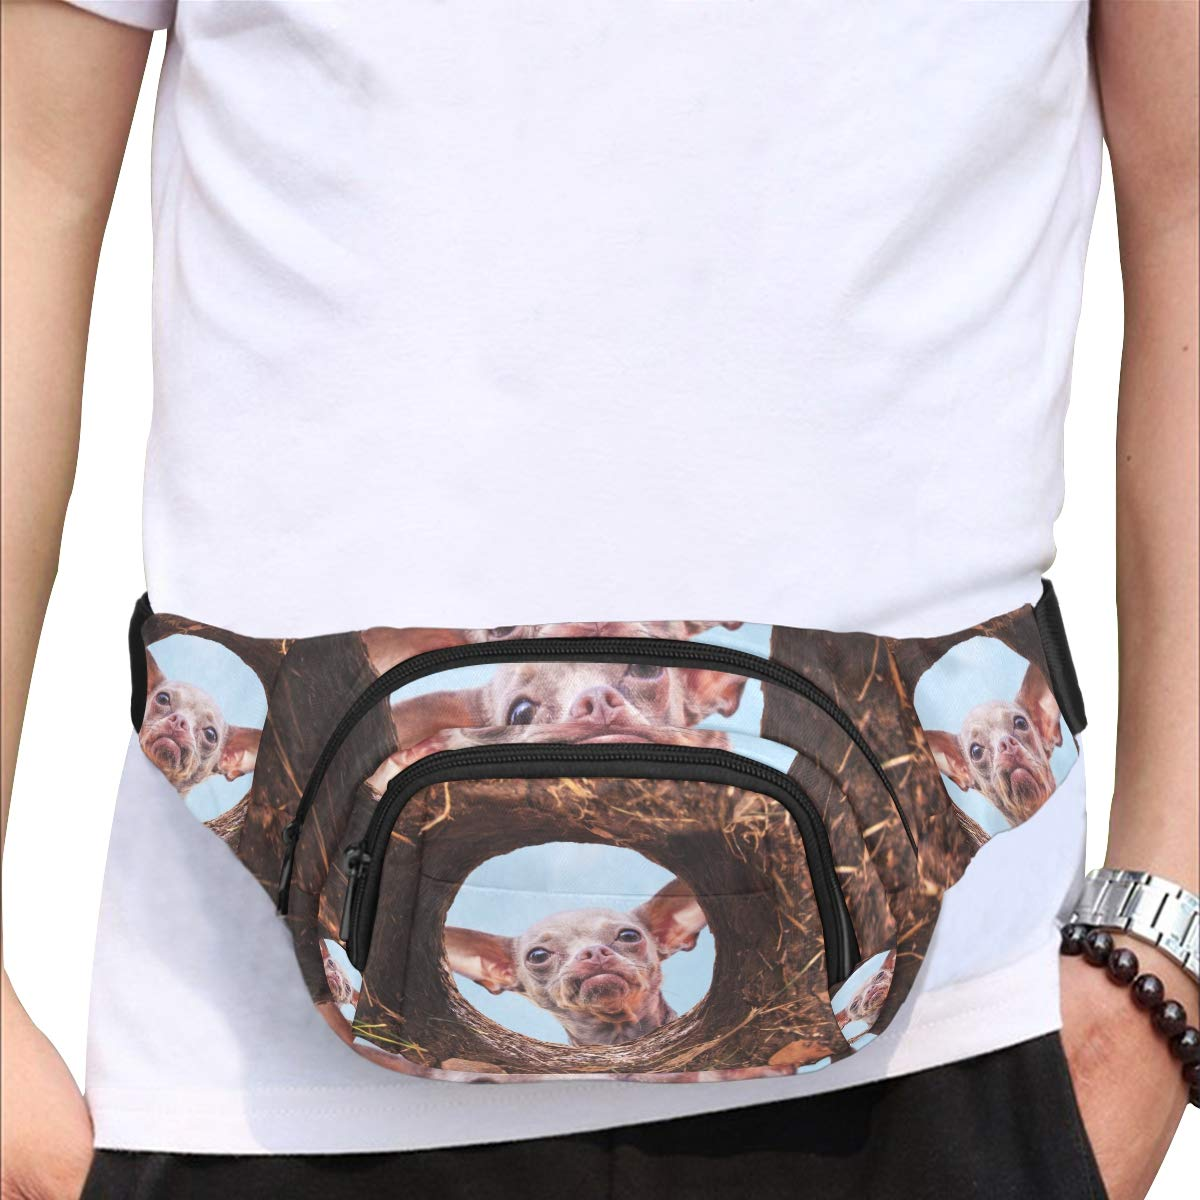 Cute Chihuahua Looking Into A Hole Fenny Packs Waist Bags Adjustable Belt Waterproof Nylon Travel Running Sport Vacation Party For Men Women Boys Girls Kids